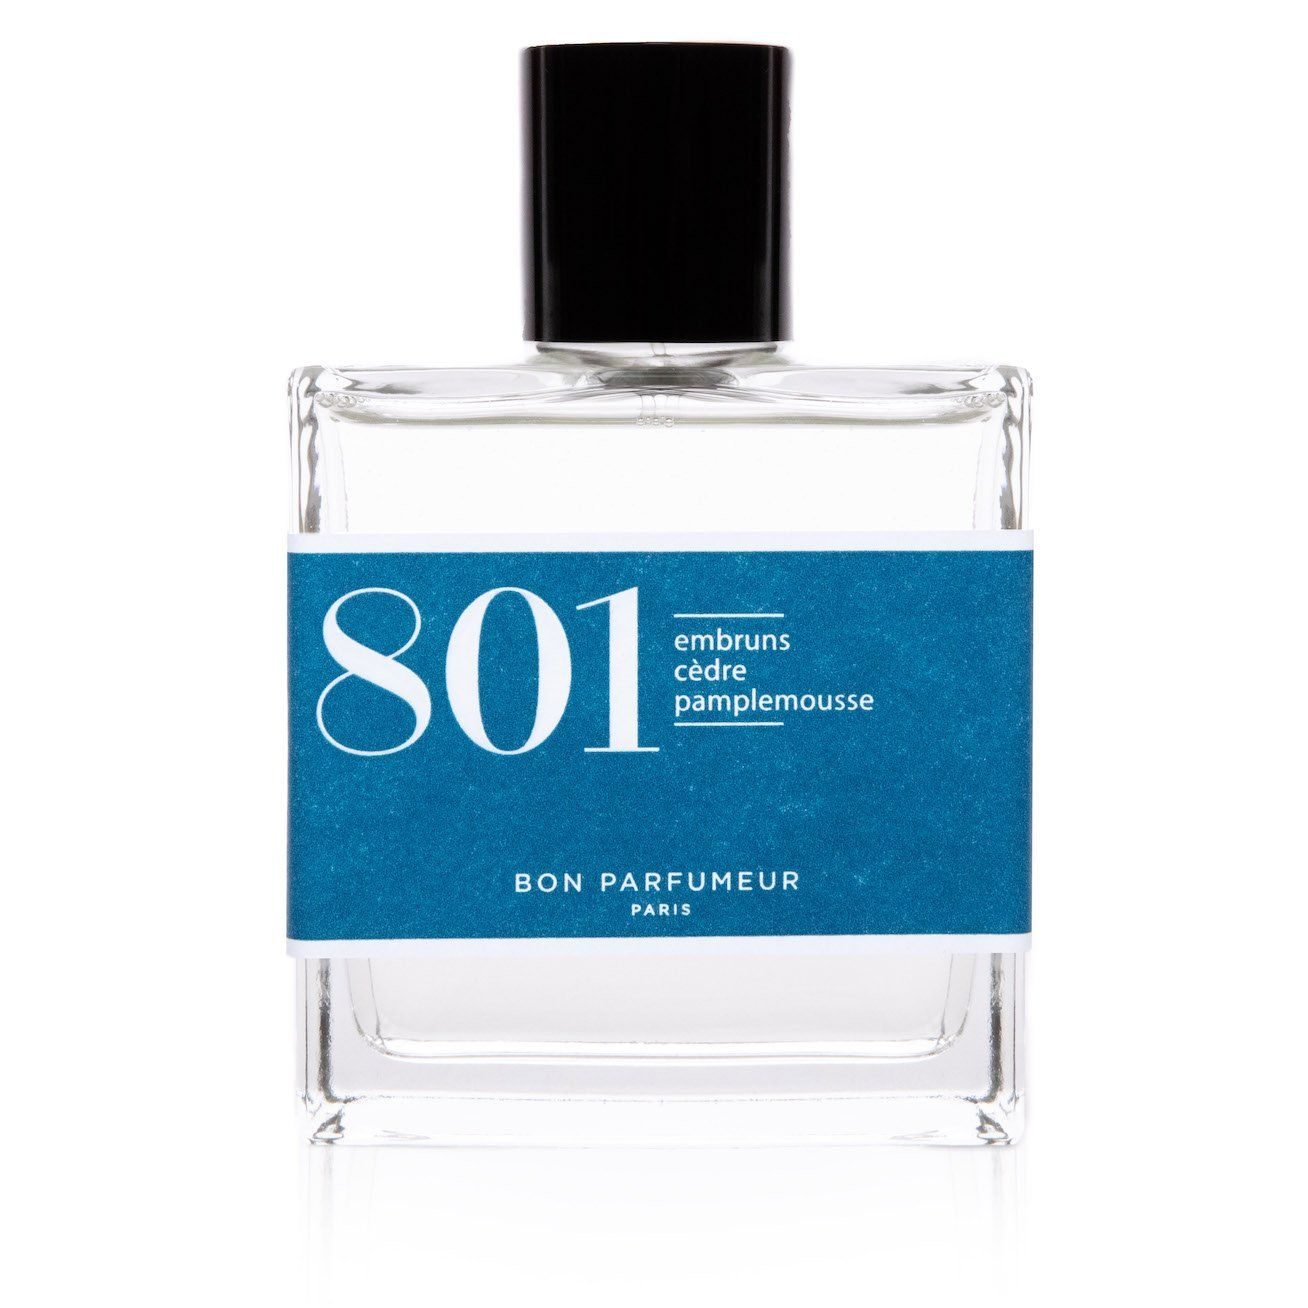 Bon Parfumeur parfum  unisex (BonParf-30 ml - 801 Aqua) - Marine | Much more than shoes